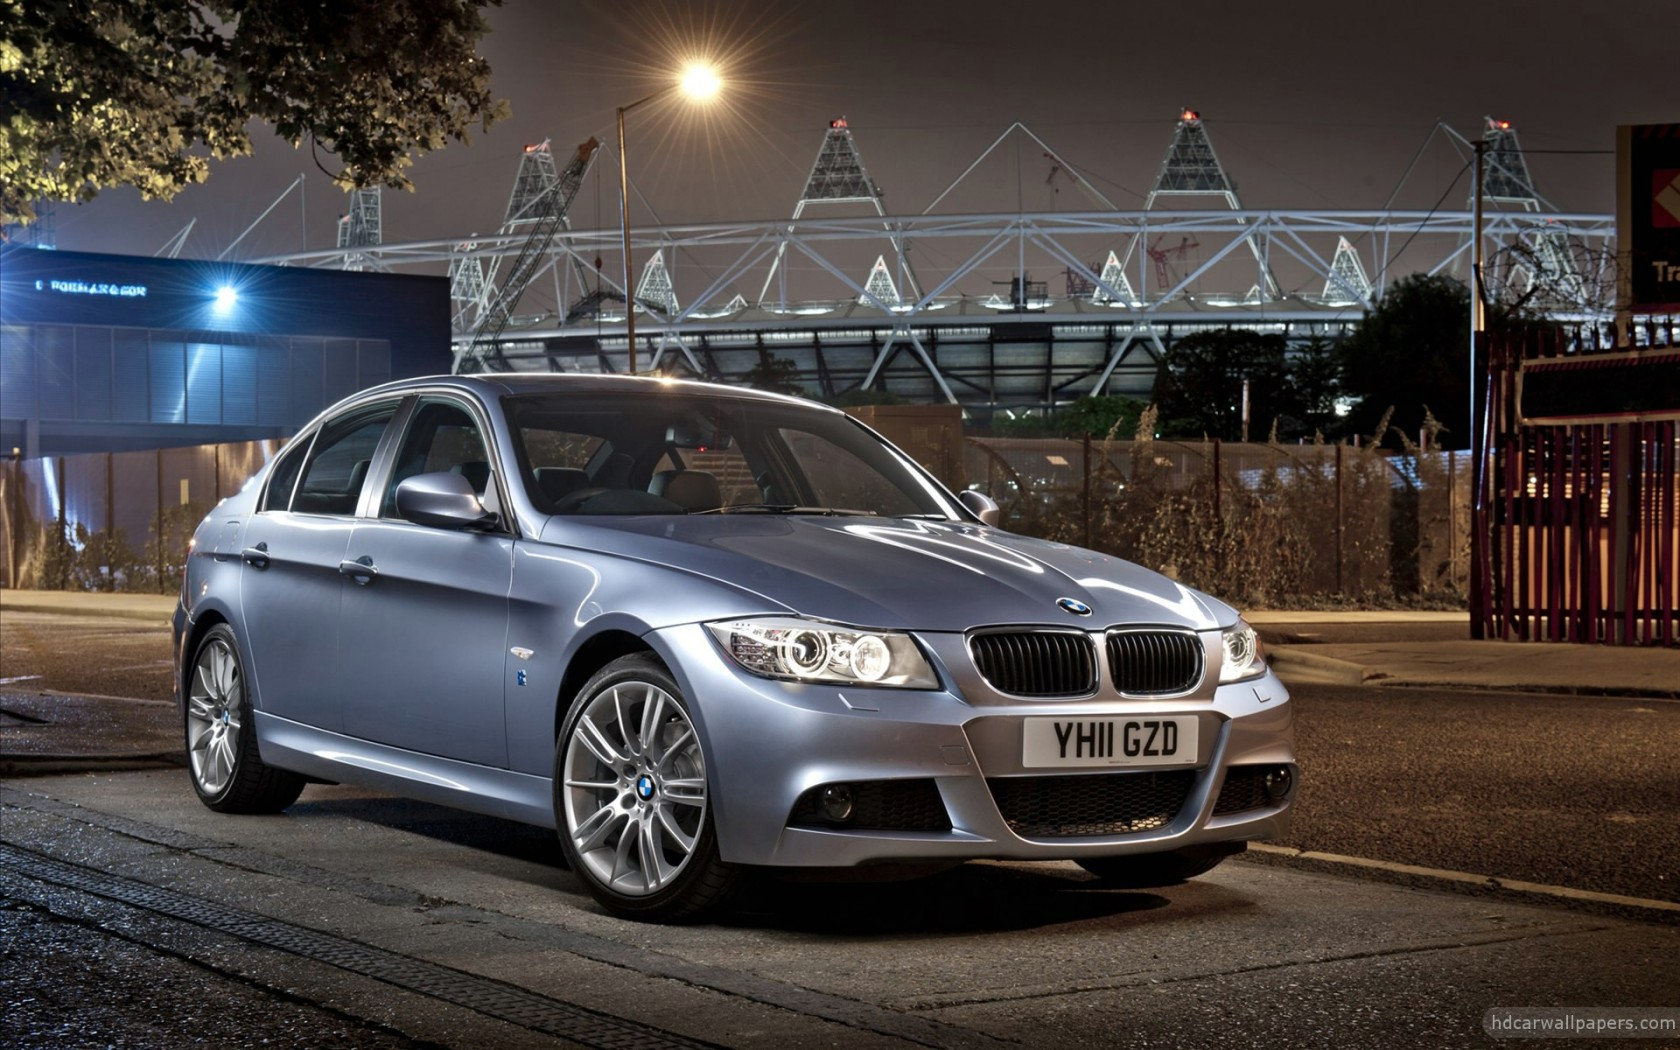 2012 BMW London Performance Edition Wallpaper in 1680x1050 Resolution